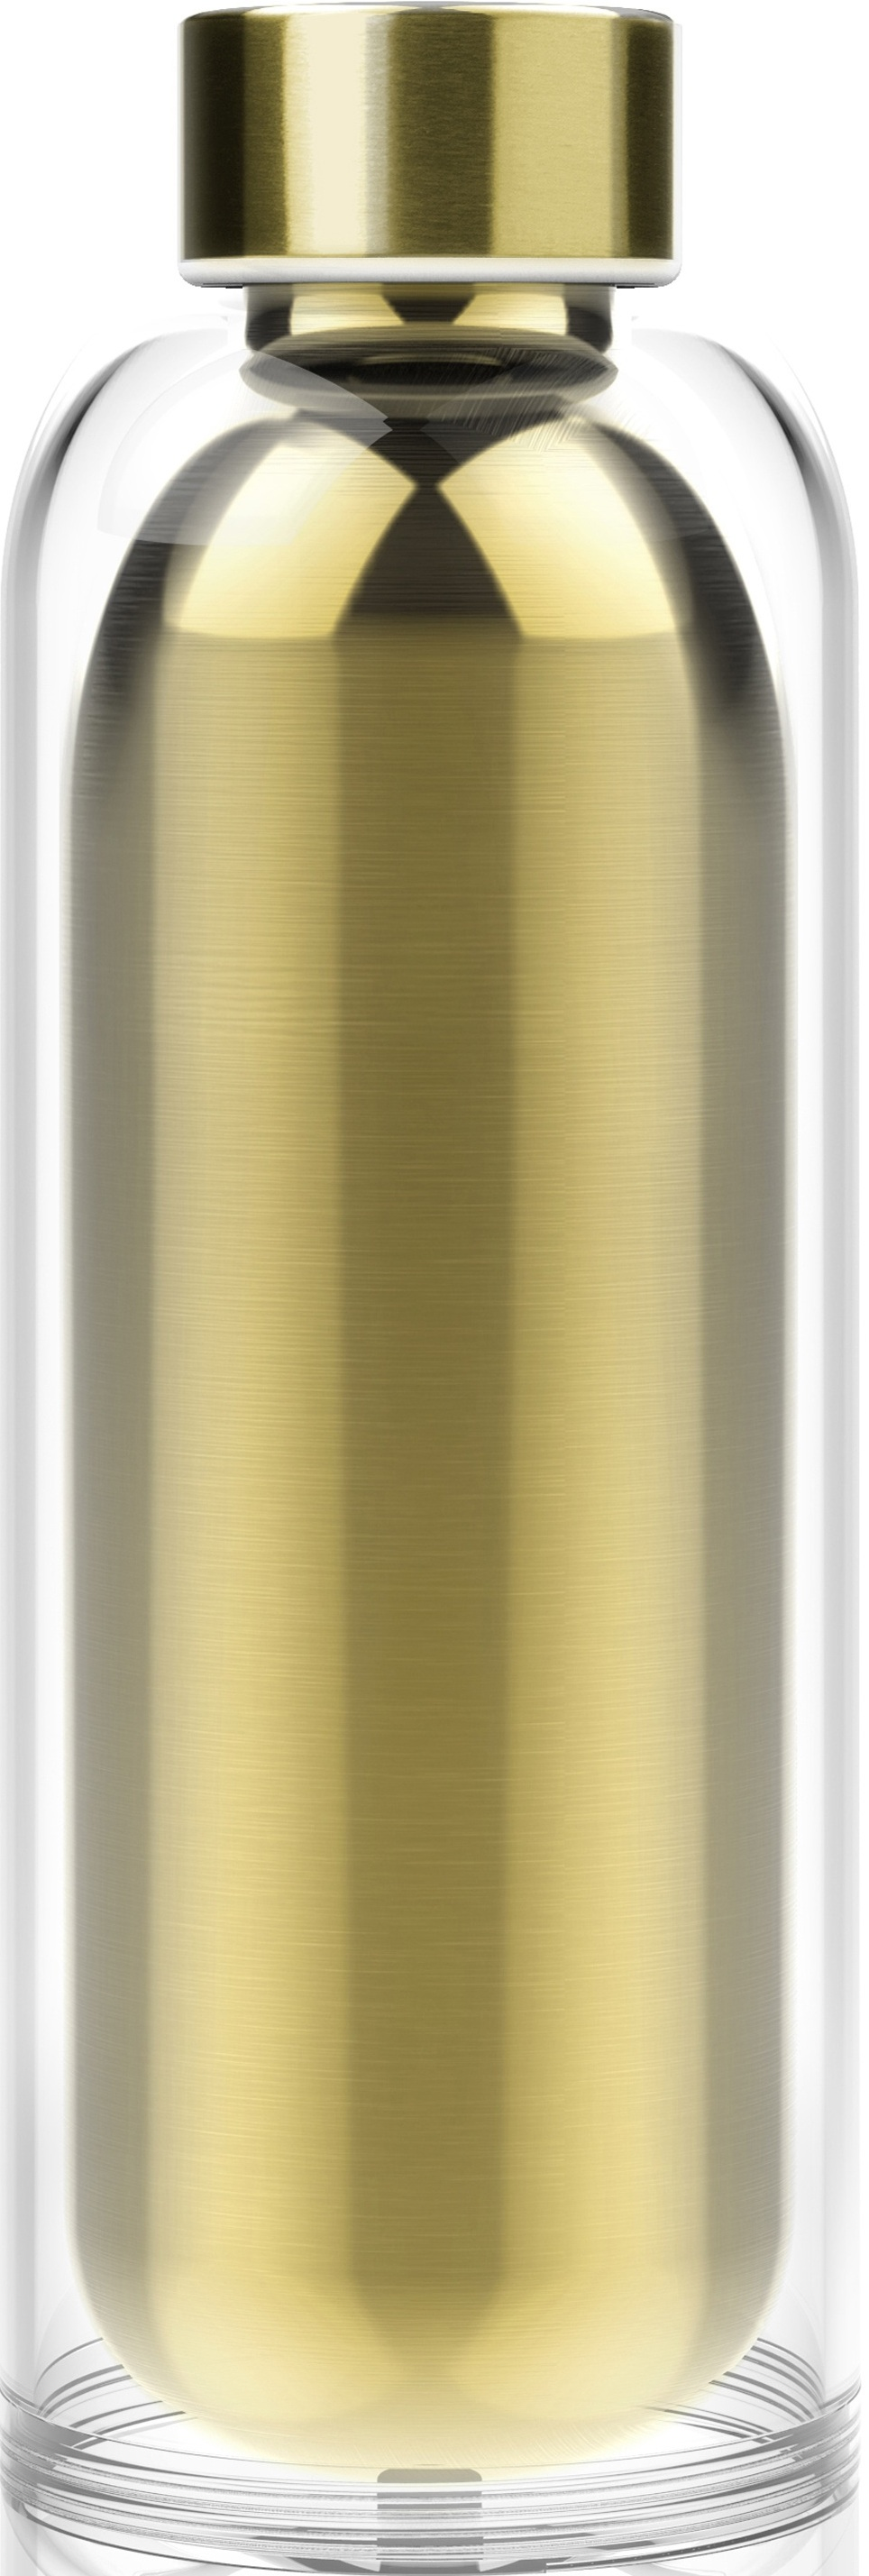 ASOBU Escape The Bottle Insulated Tumbler, Champagne 17 oz by AD-N-ART INC